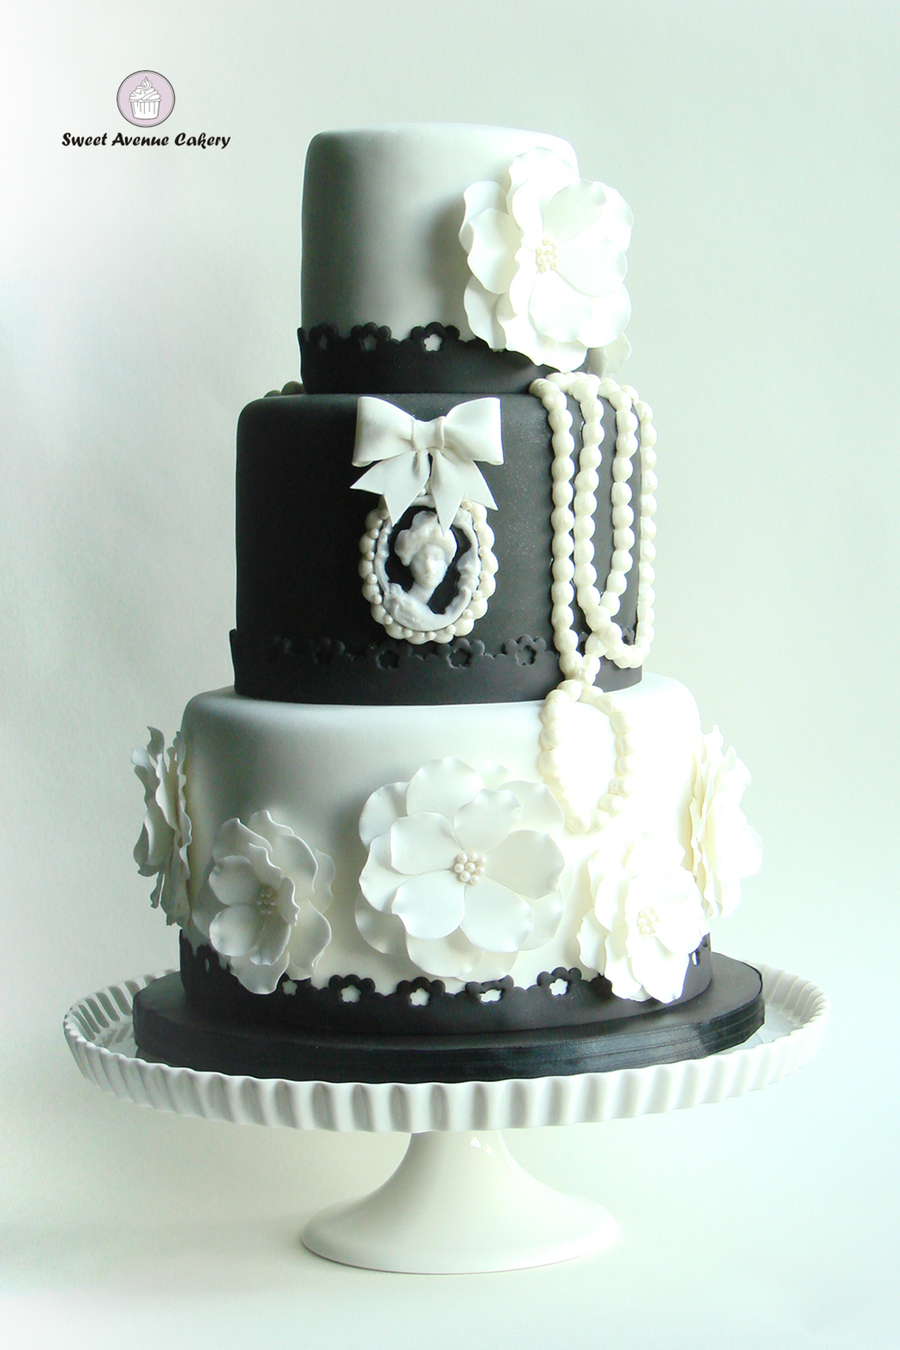 Vintage Black And White Wedding Cake   CakeCentral com Vintage Black And White Wedding Cake on Cake Central